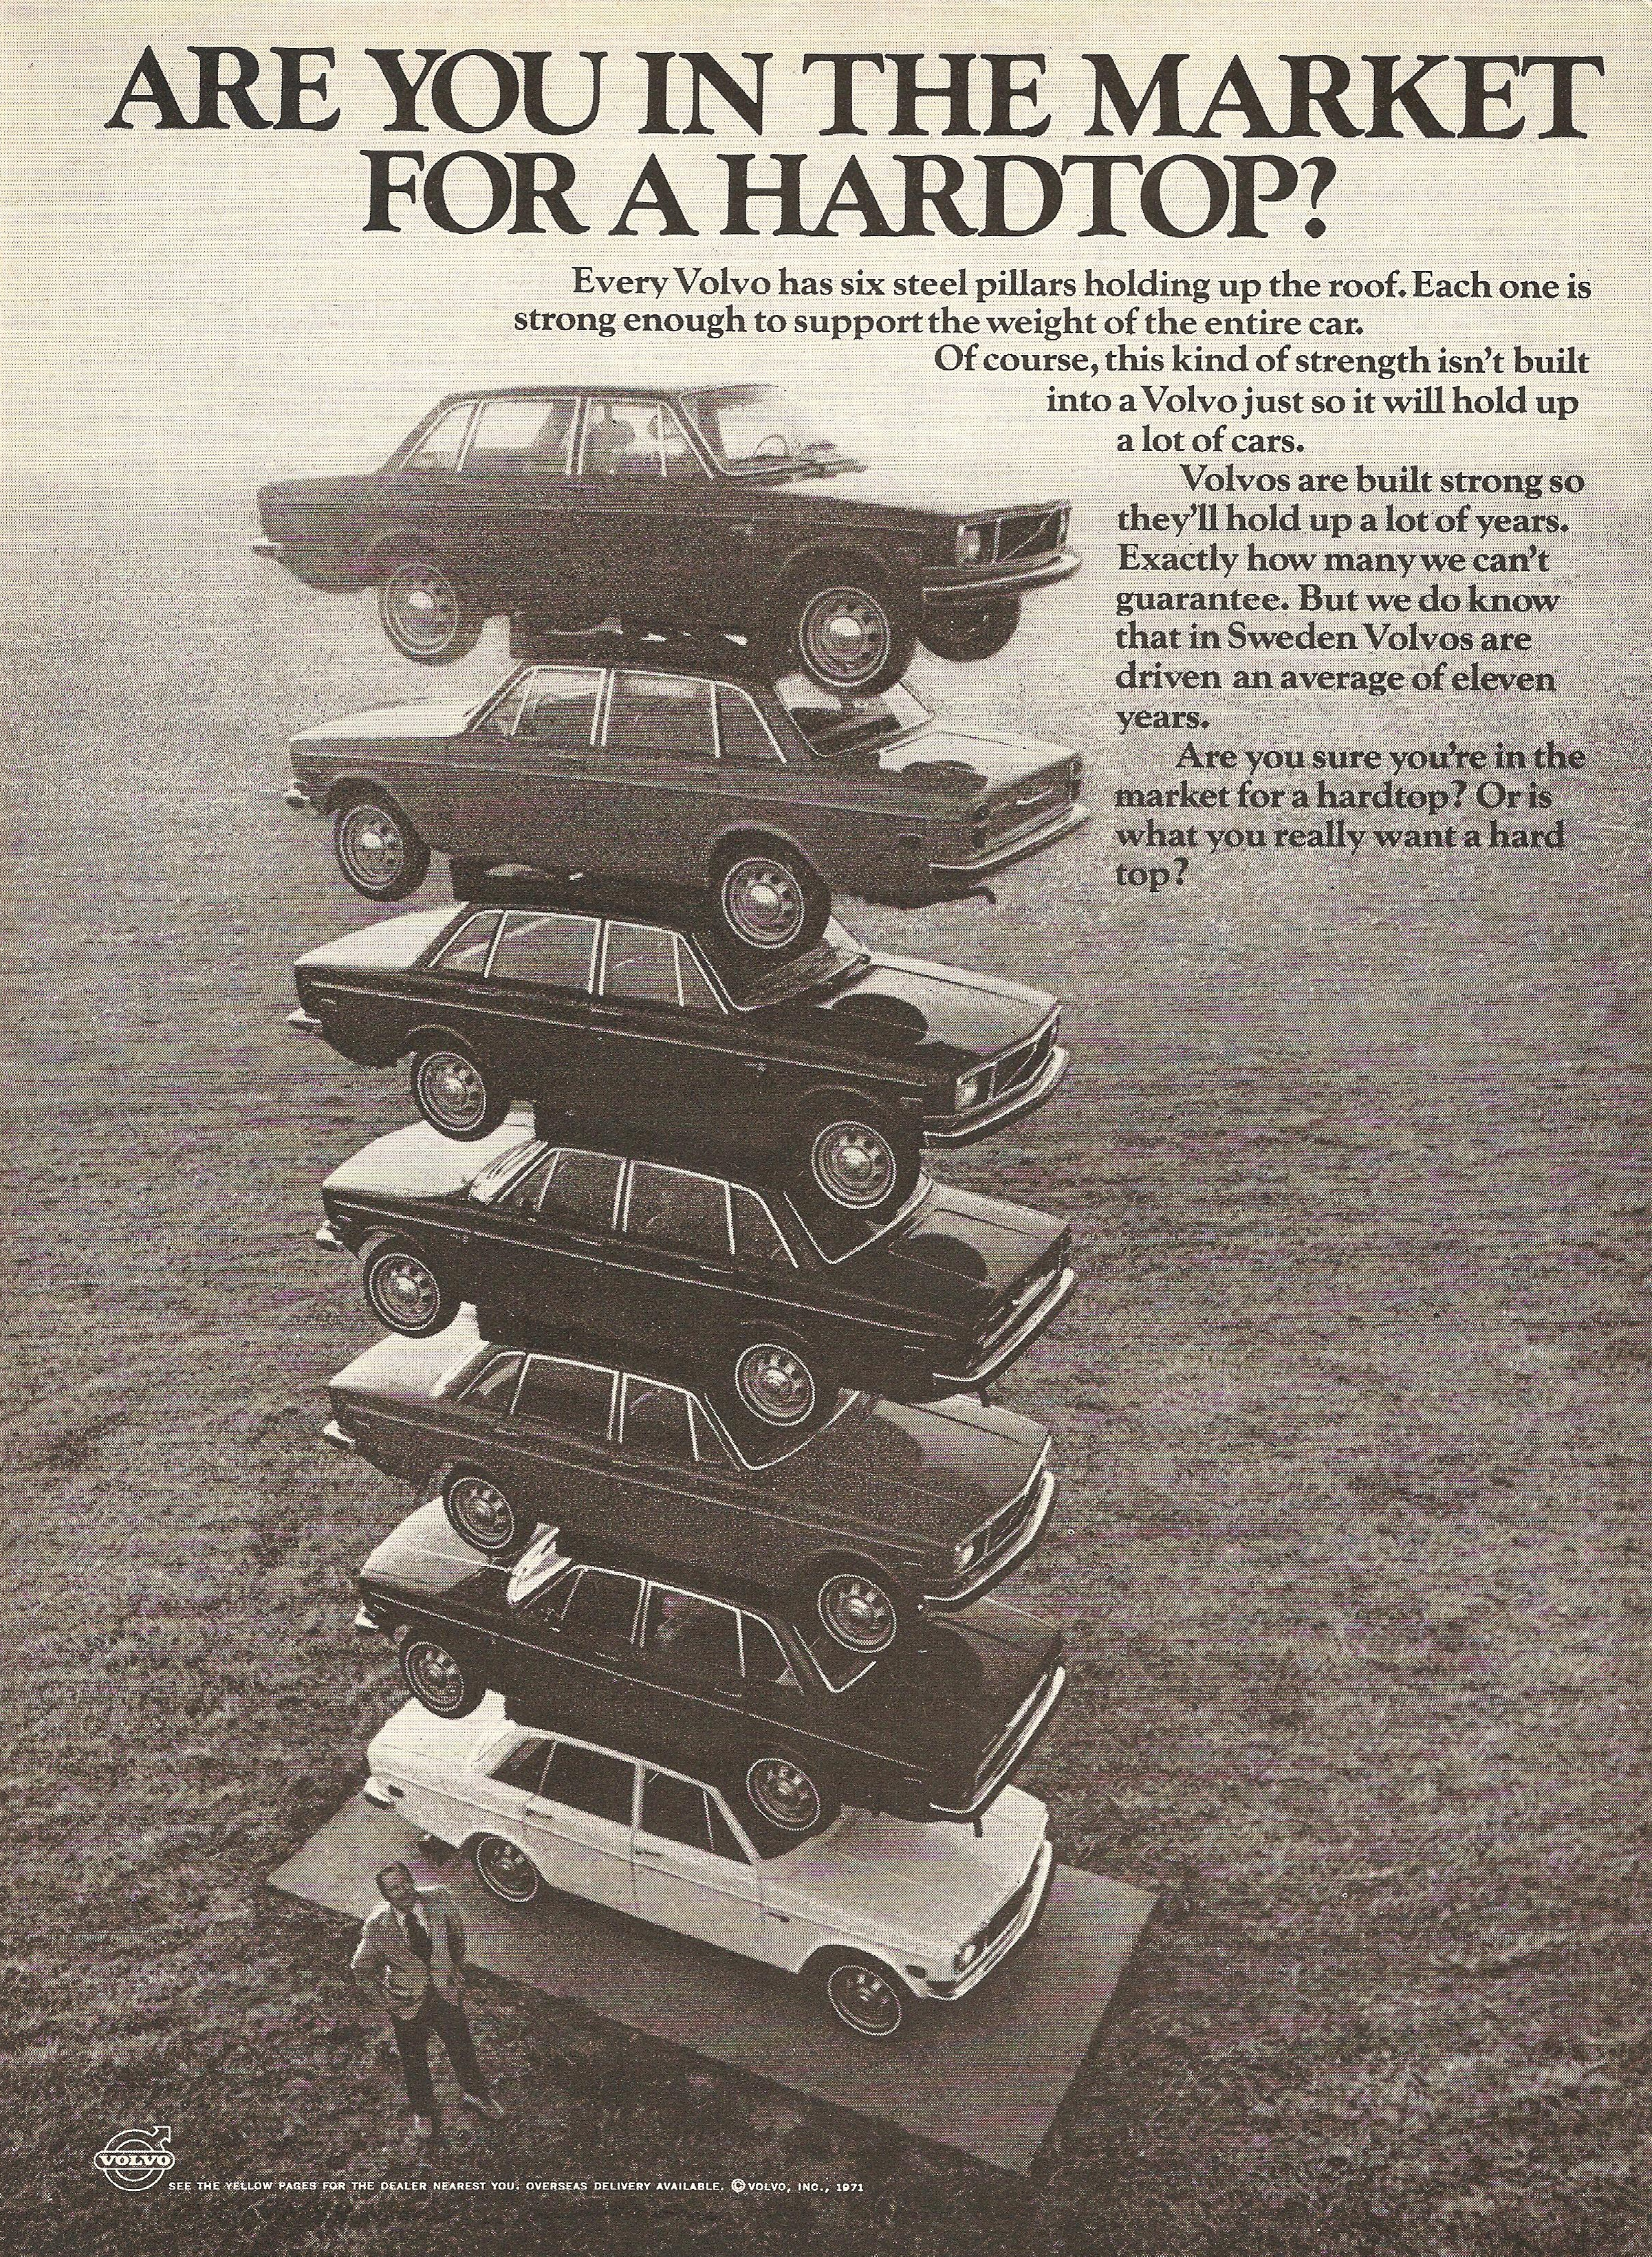 Classic Volvo Advertising of the 1970s